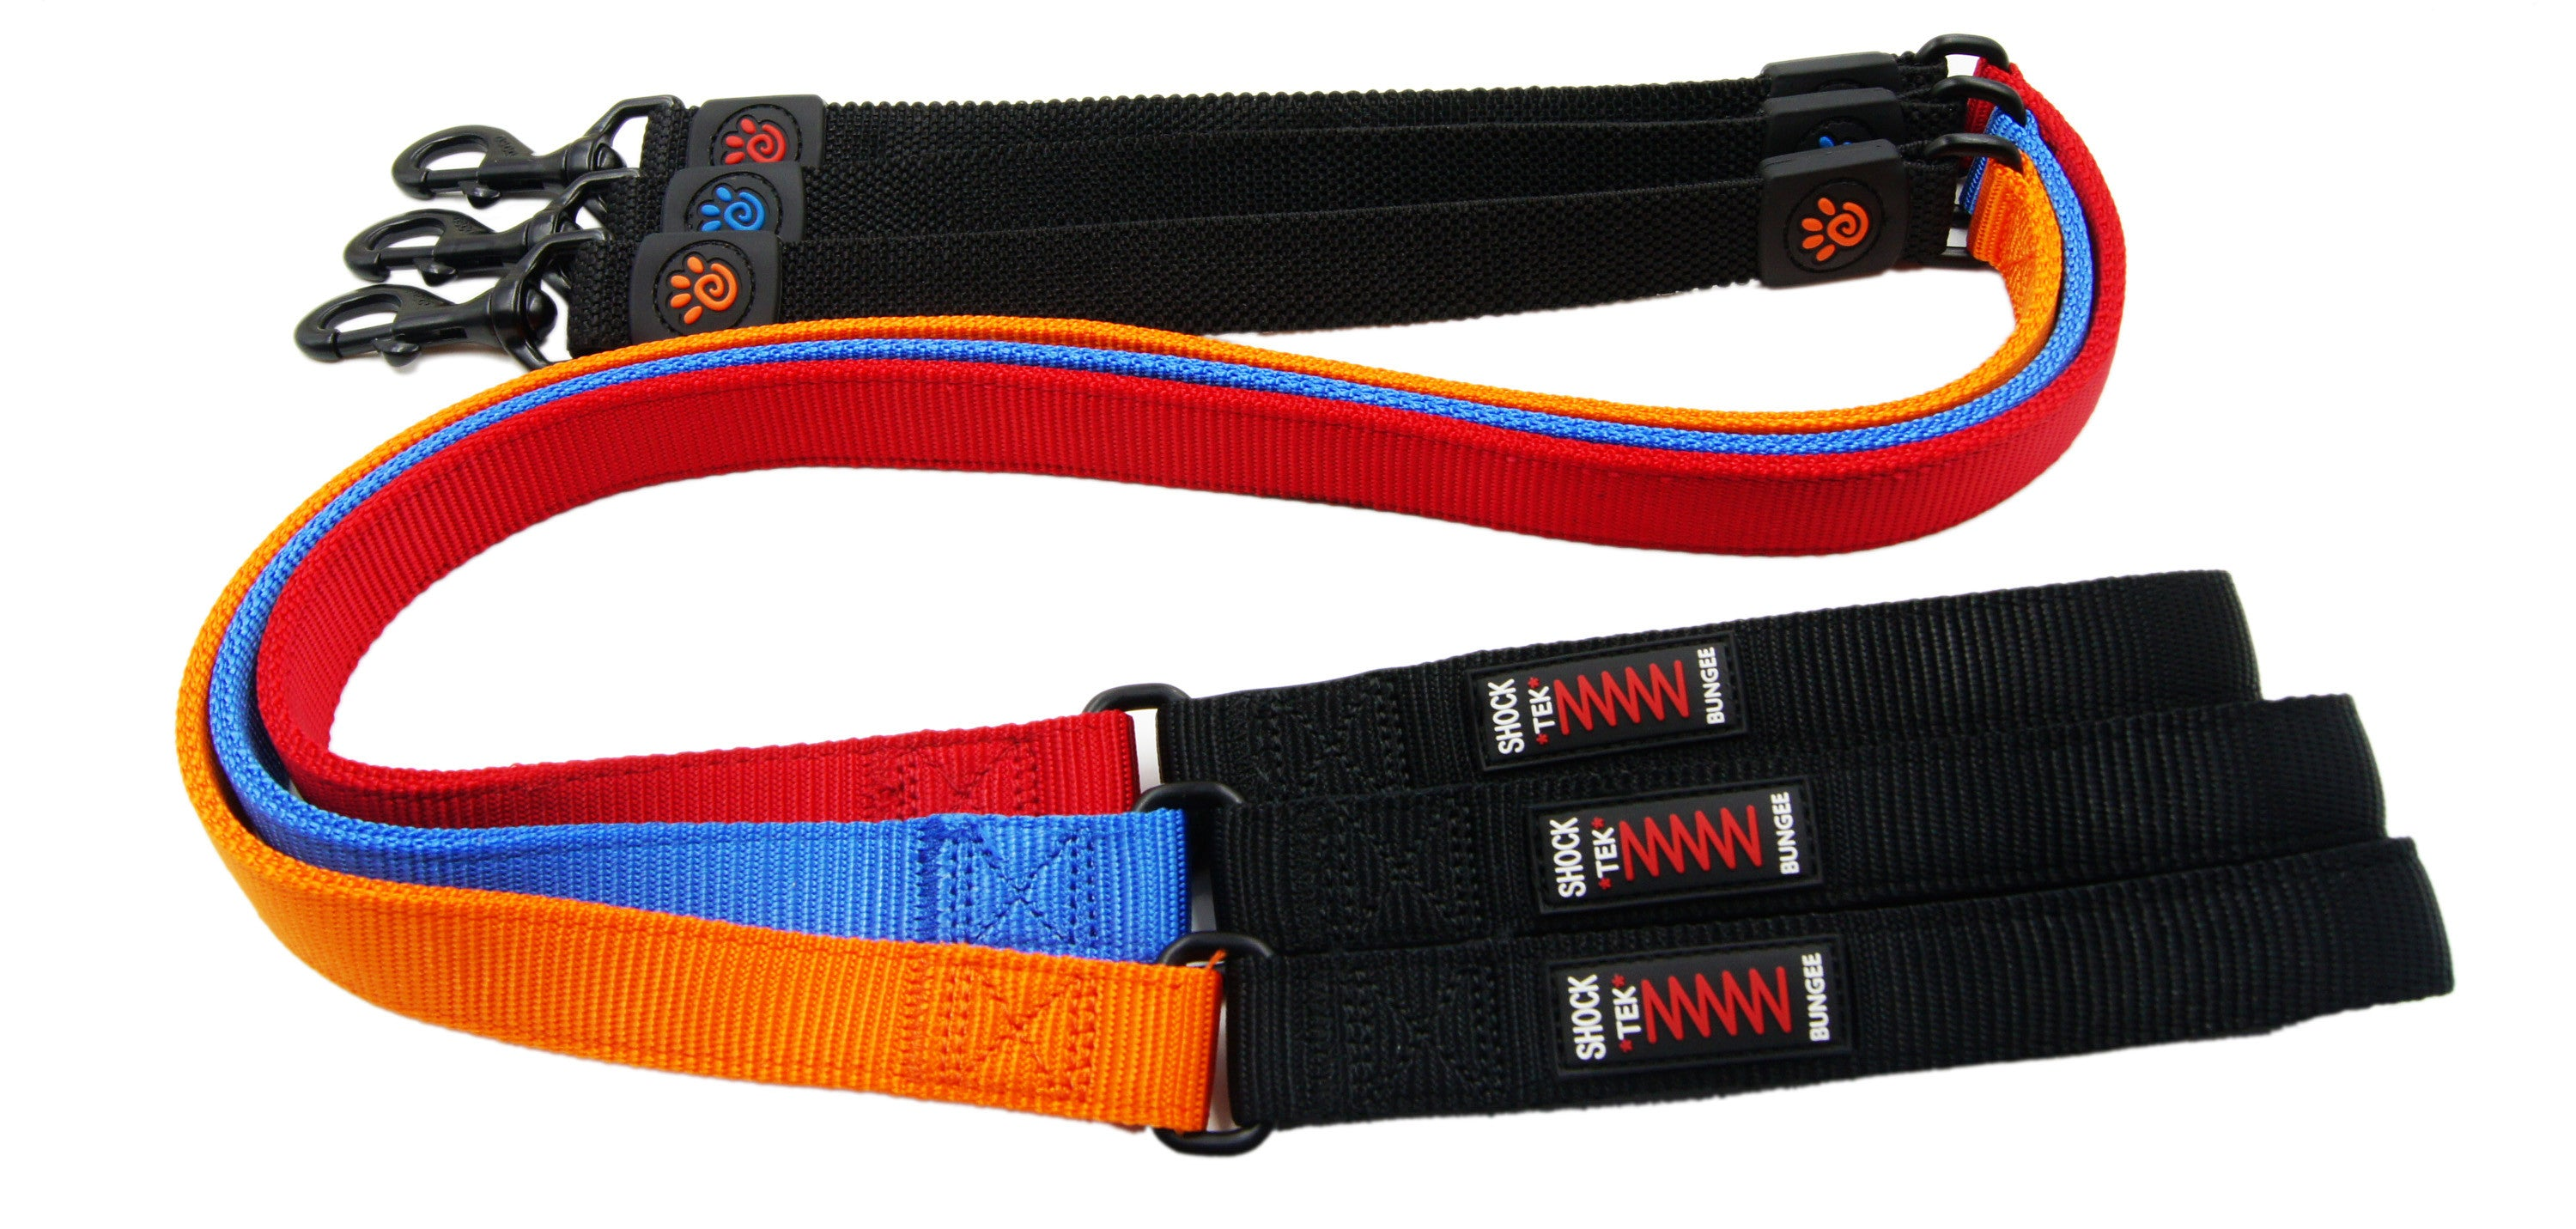 DOCO® 4ft Shock Absorbing BUNGEE Leash - Black - www.docopet.com